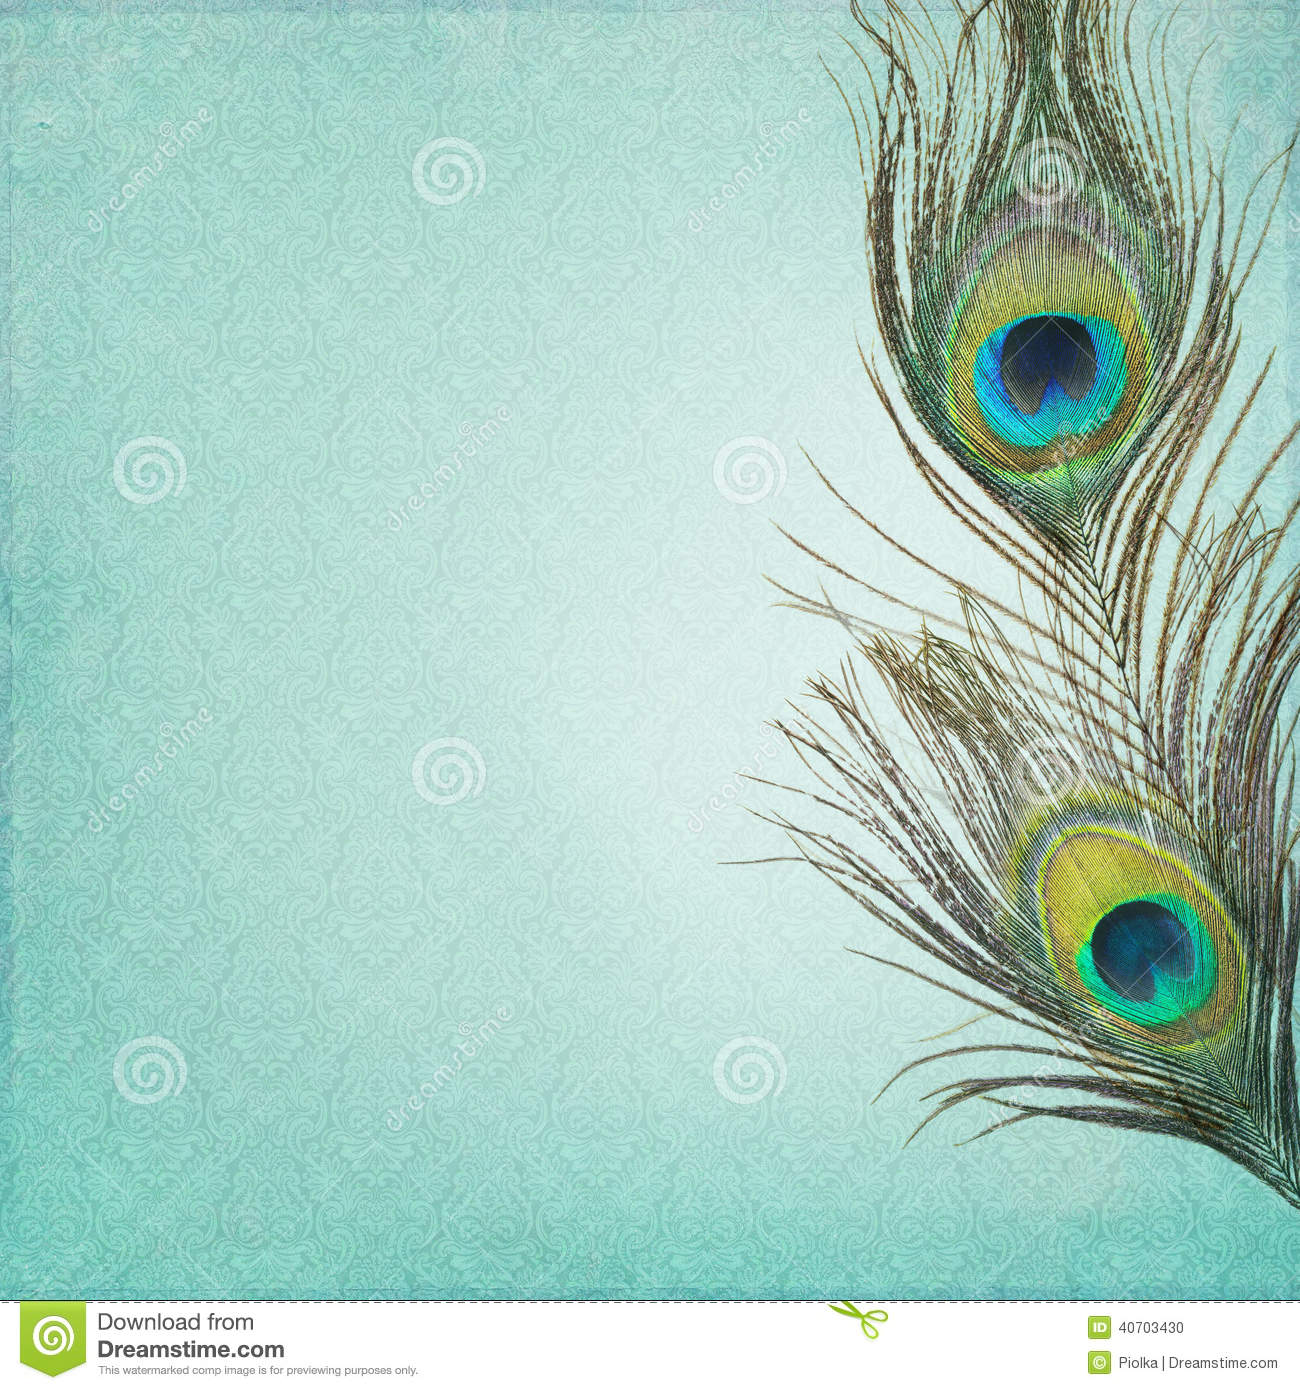 Vintage Background With Peacock Feathers Stock Photo